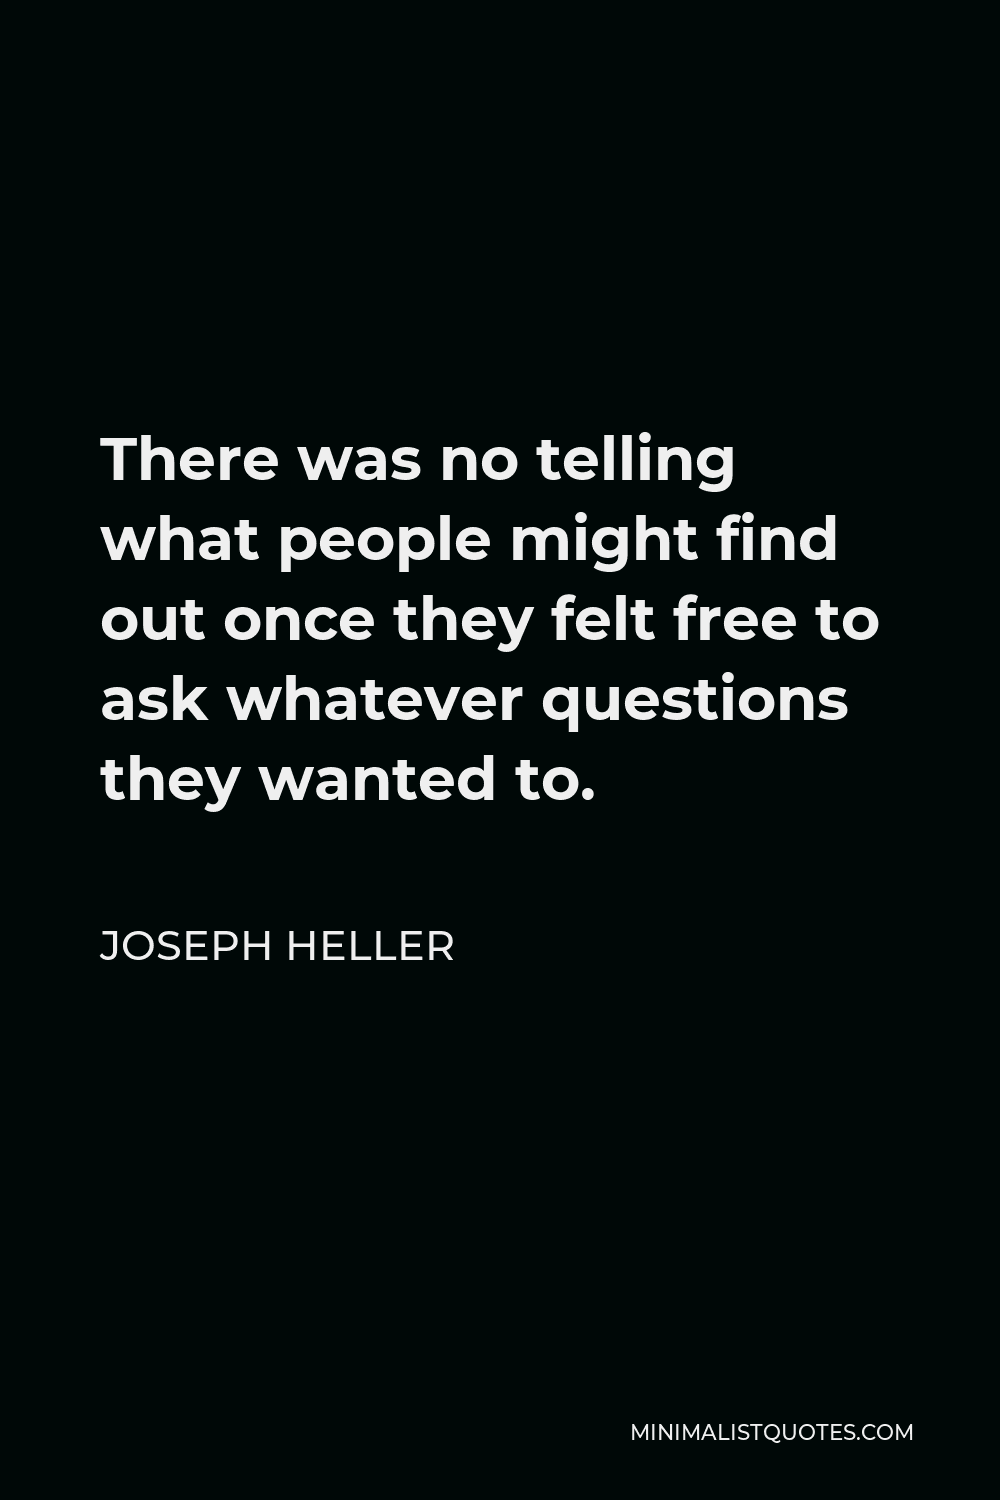 Joseph Heller Quote - There was no telling what people might find out once they felt free to ask whatever questions they wanted to.